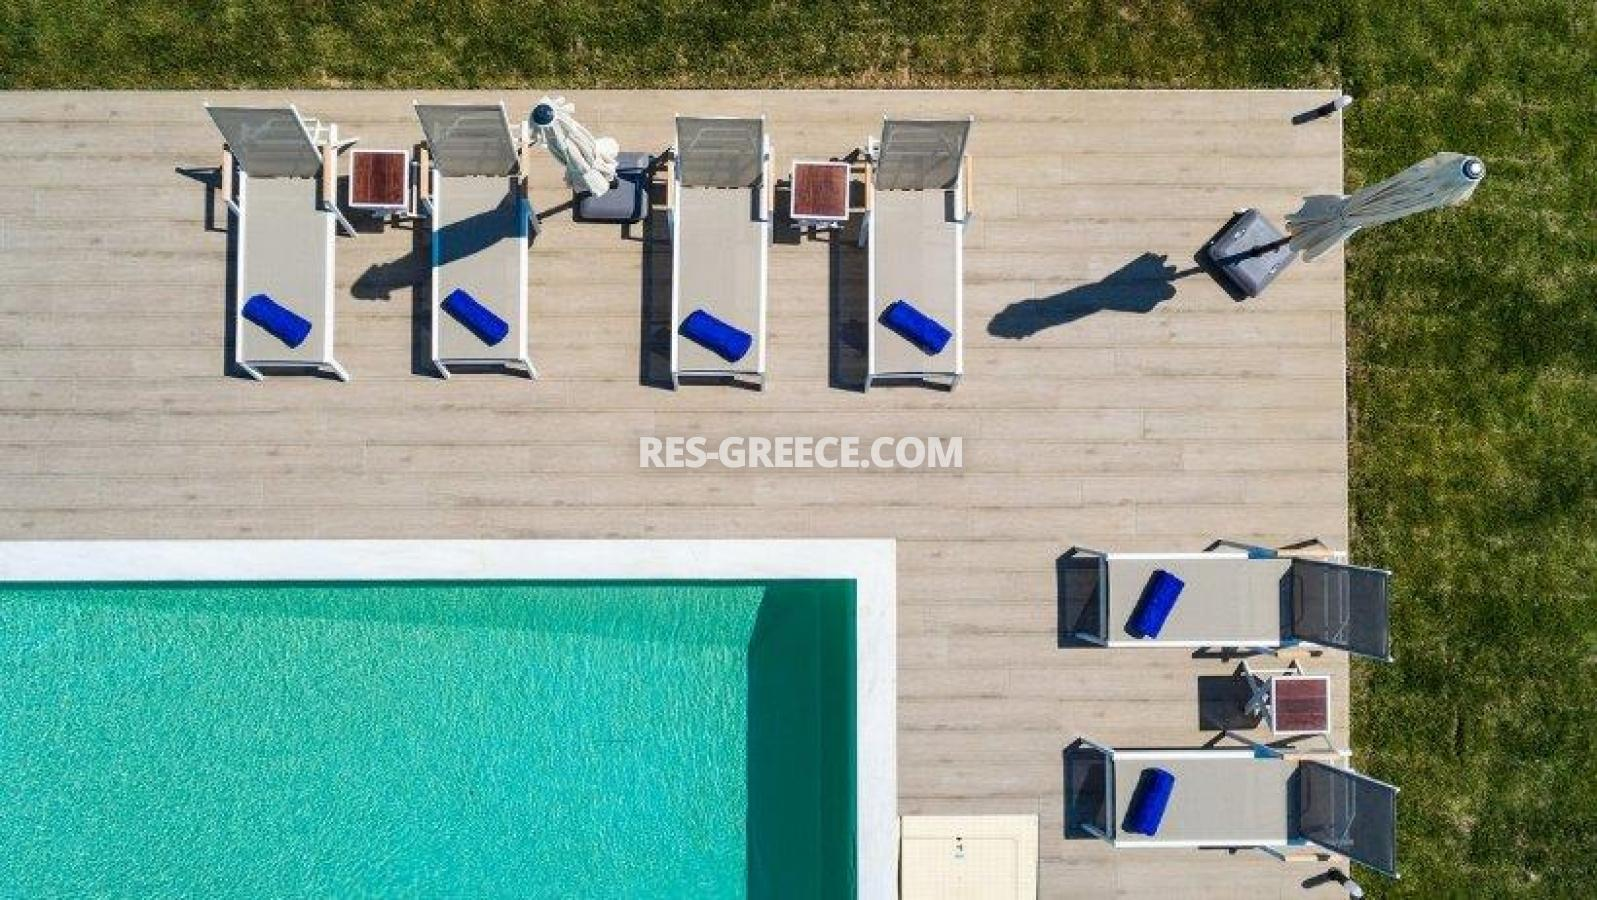 Complex Art, Halkidiki-Sithonia, Greece - complex of 4 mesonettes for rent with pool in just 80m from the beach - Photo 16